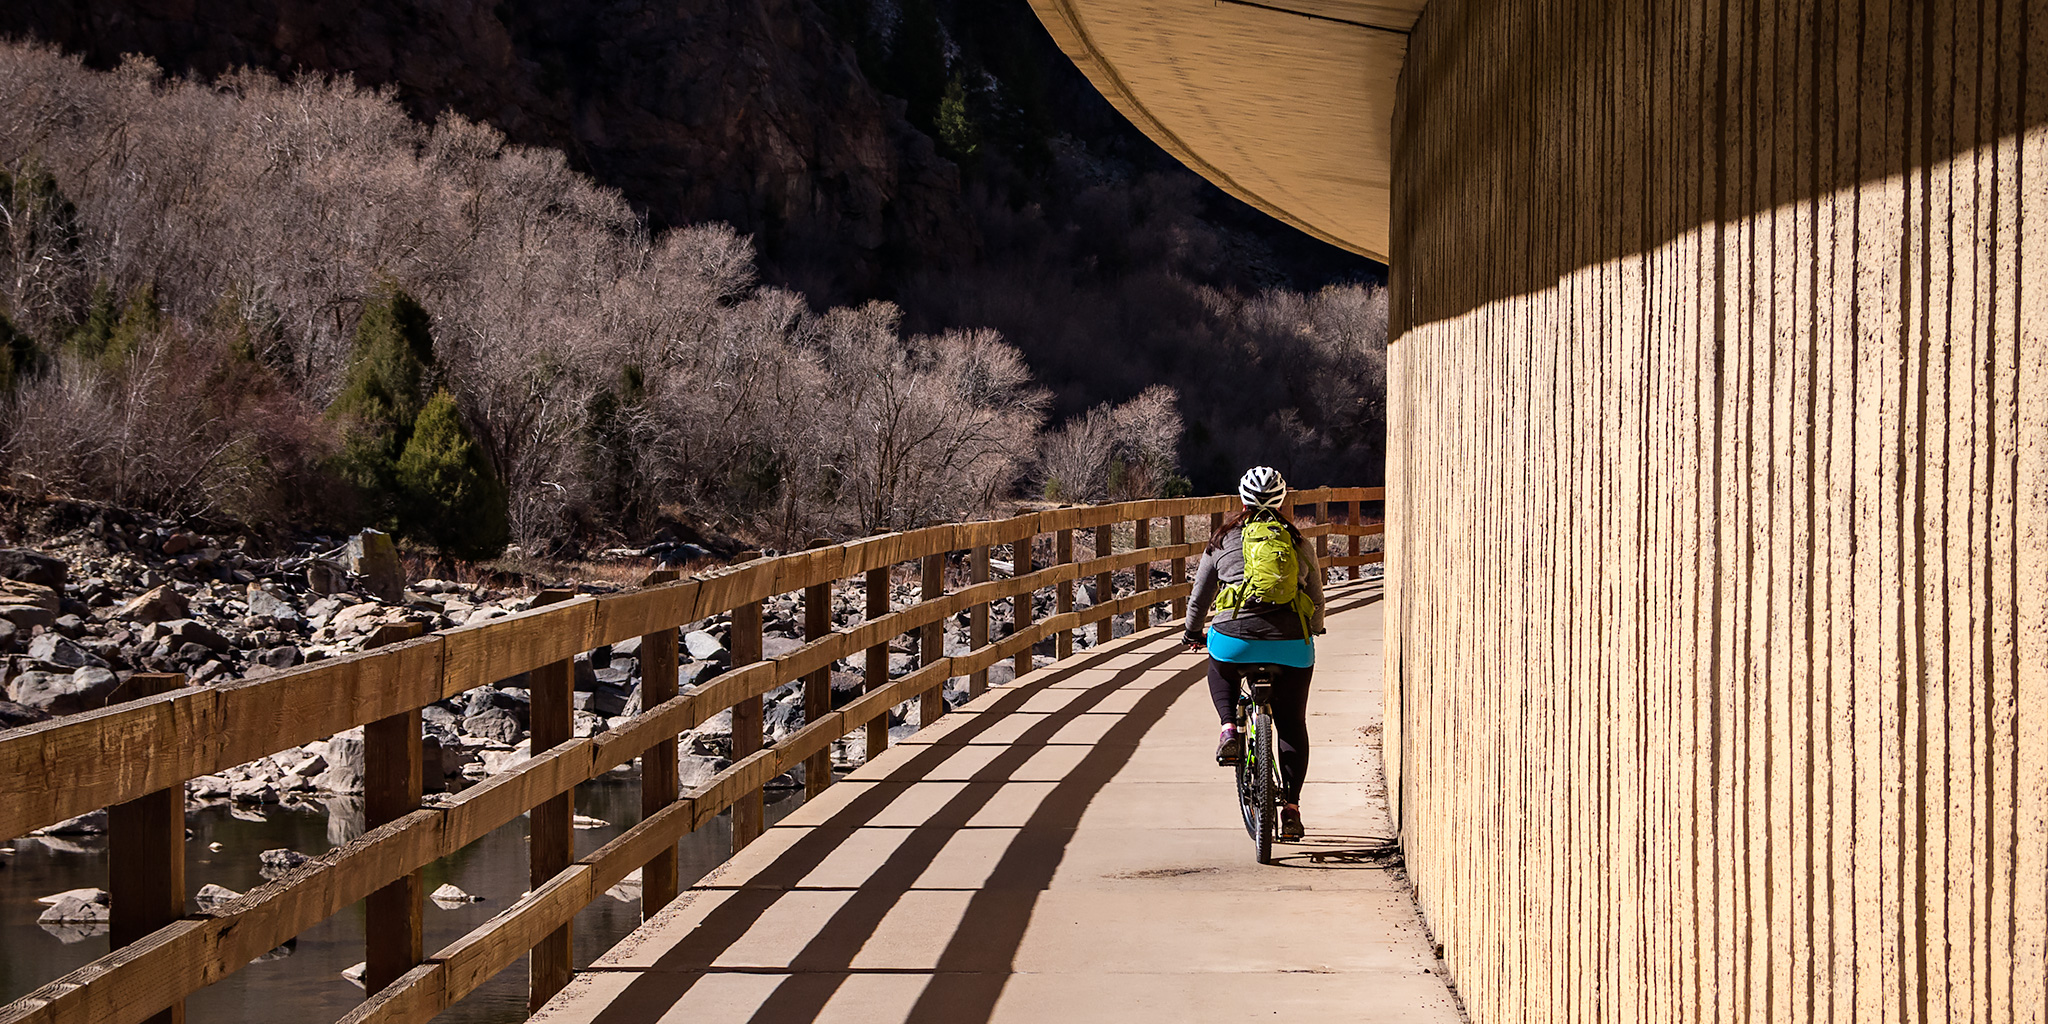 Glenwood Canyon Recreation Trail